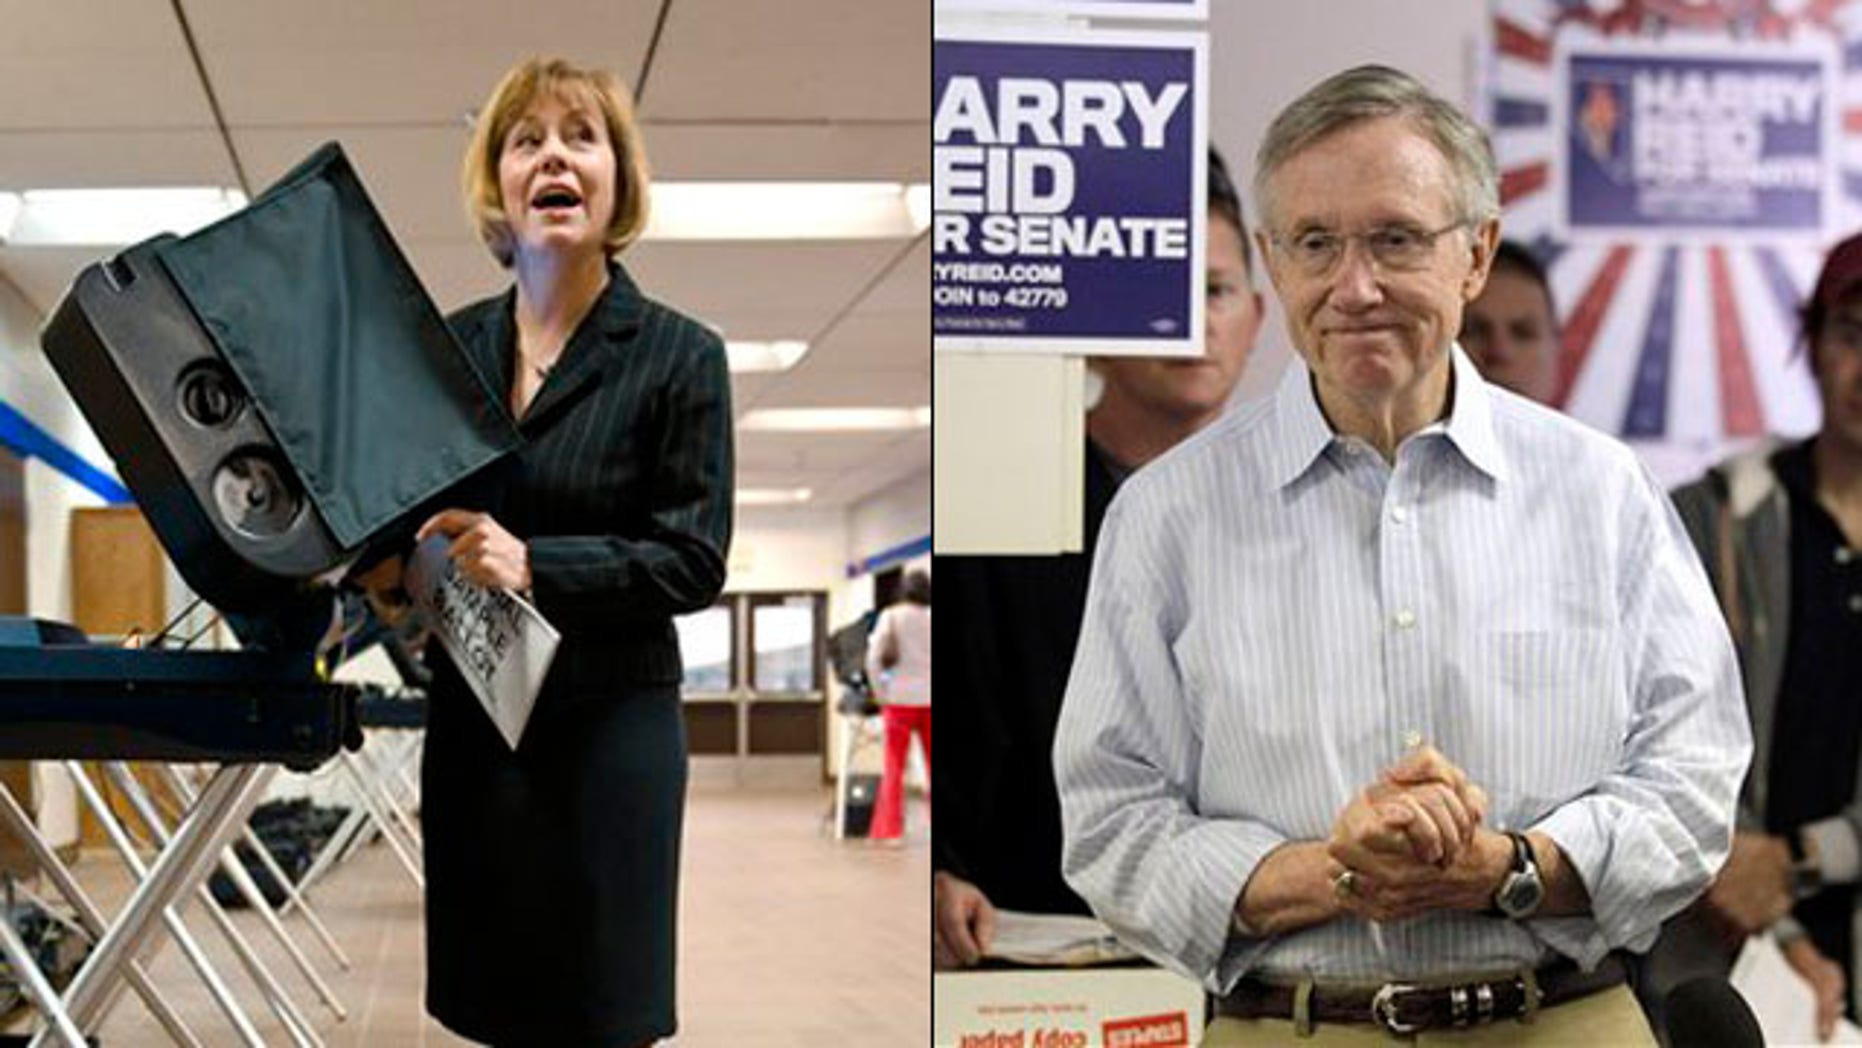 Shown here are Nevada Republican Senate nominee Sharron Angle, left, and Senate Majority Leader Harry Reid. (AP Photos)